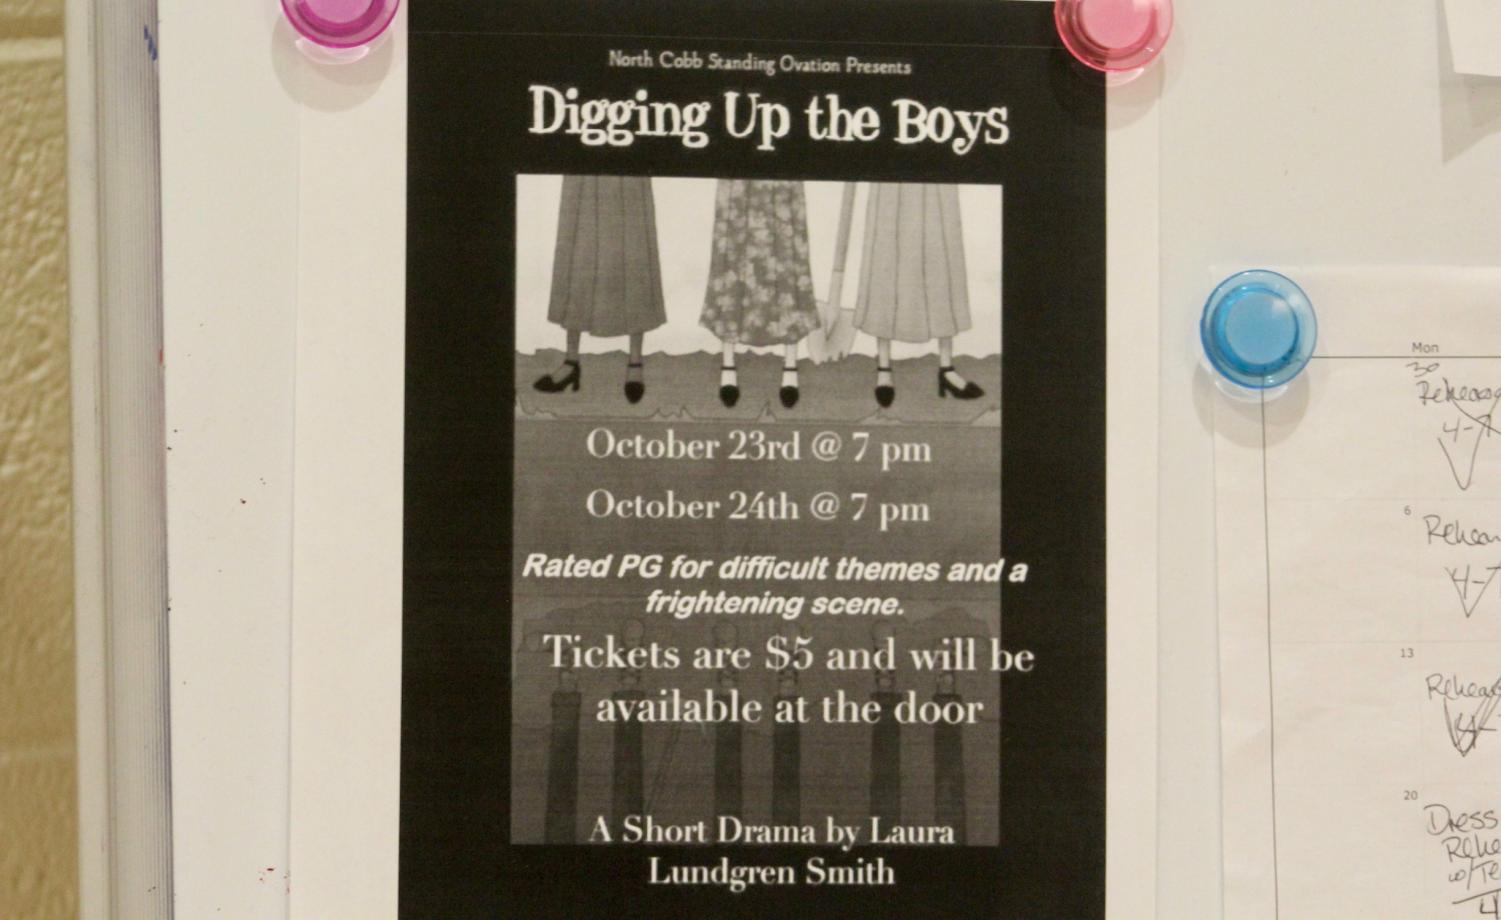 The NC Standing Ovation hosts their One Act show, Digging Up the Boys. One can find the $5 tickets available at the door of the PAC at 7pm today. Dig up some of the boys and enjoy NC's talented cast and crew while they reenact a short drama by Laura Lundren Smith.